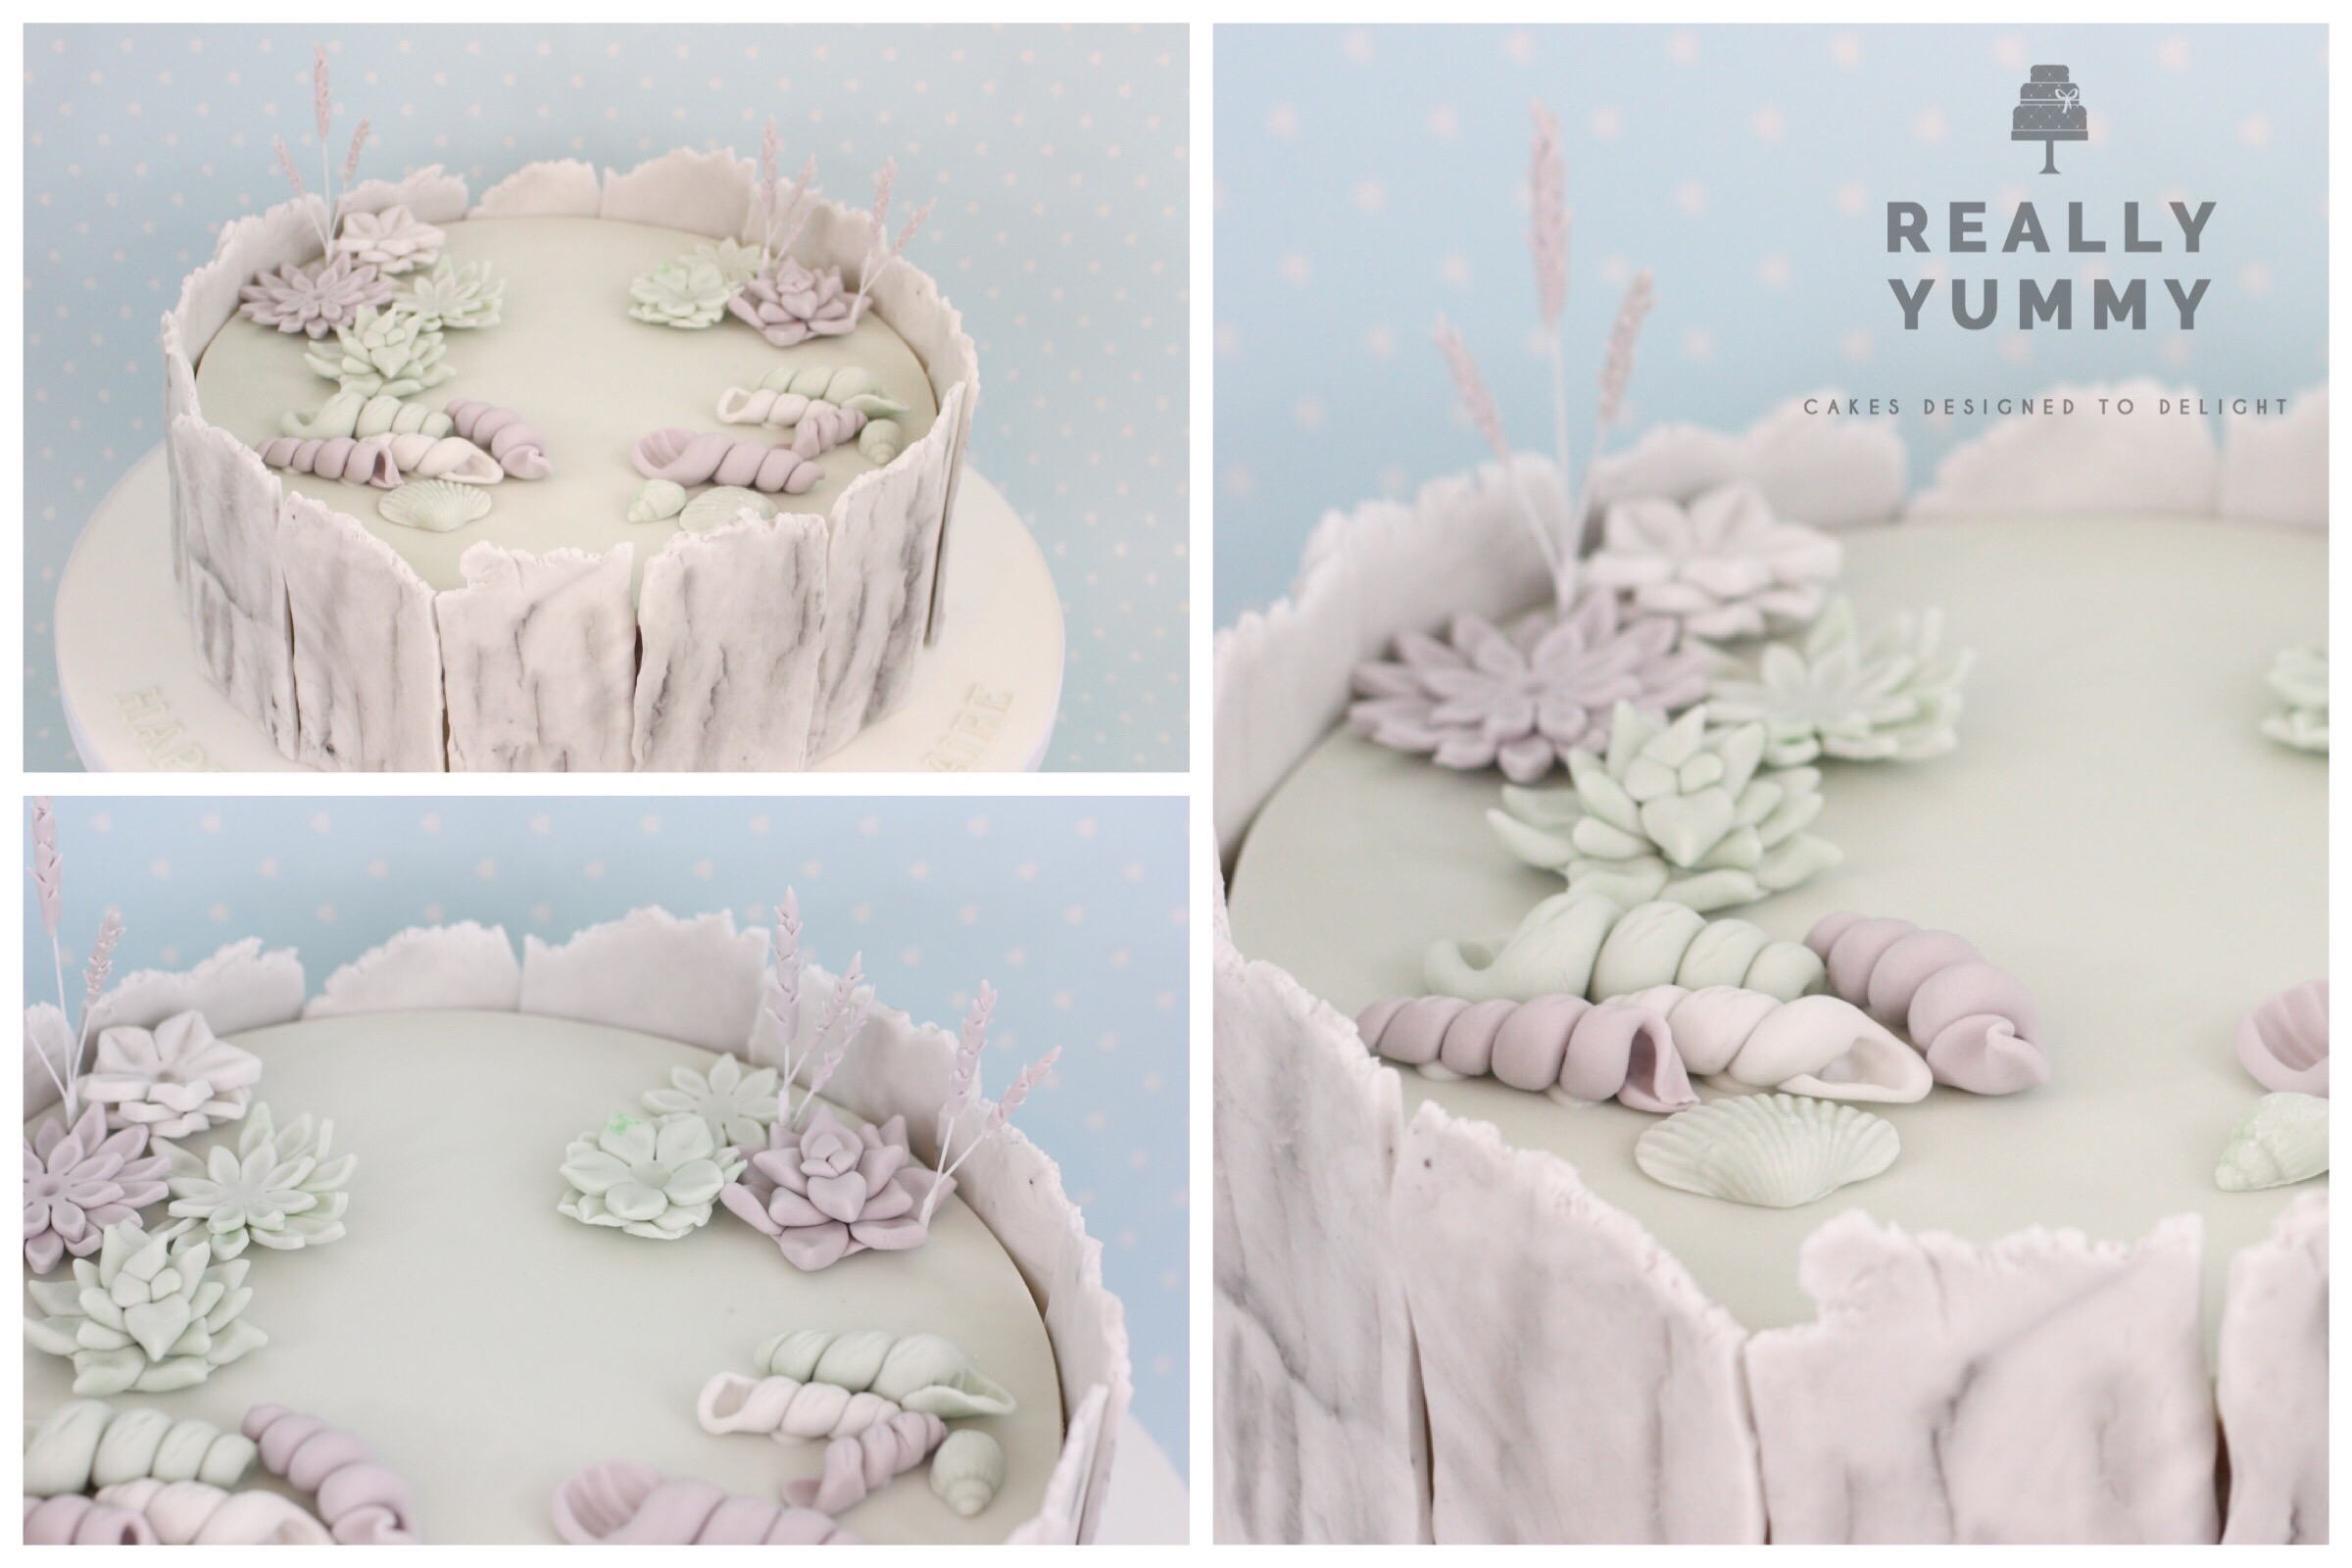 Beach cake, in muted tones with shells